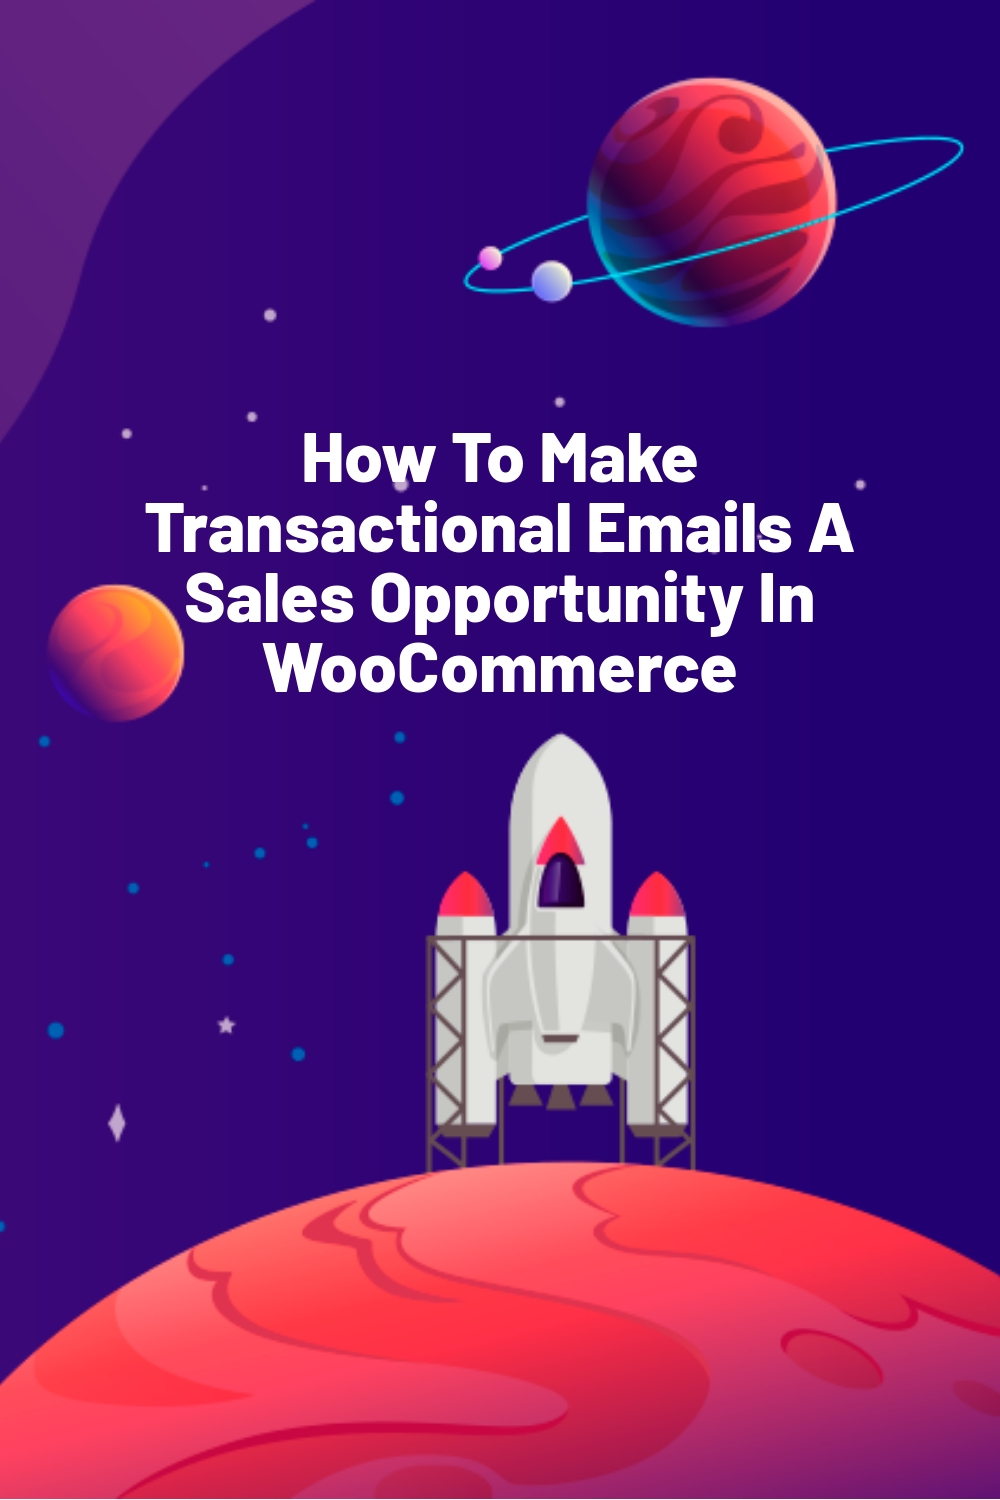 How To Make Transactional Emails A Sales Opportunity In WooCommerce